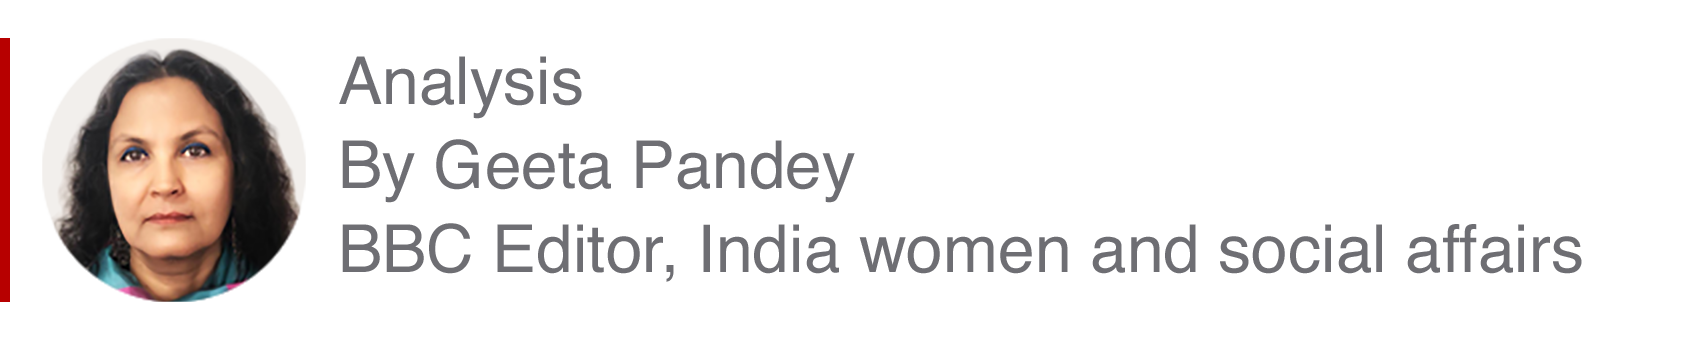 Analysis box by Geeta Pandey, Editor, India women and social affairs